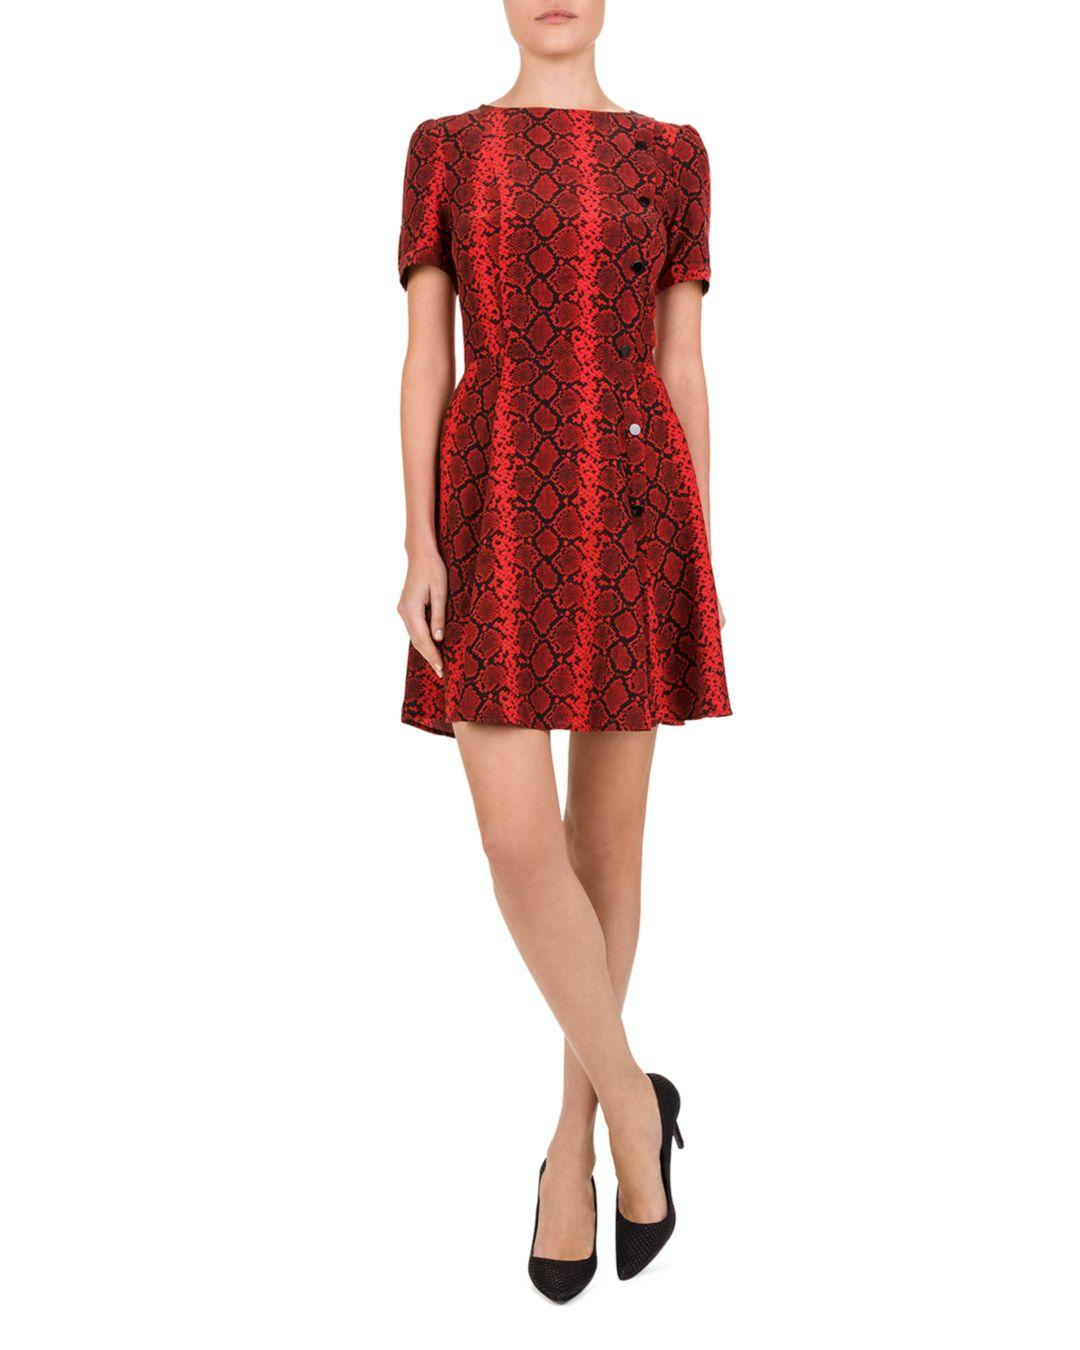 77c375fe645e7d The Kooples Red Hot Snake-print Mini Dress in Red - Lyst